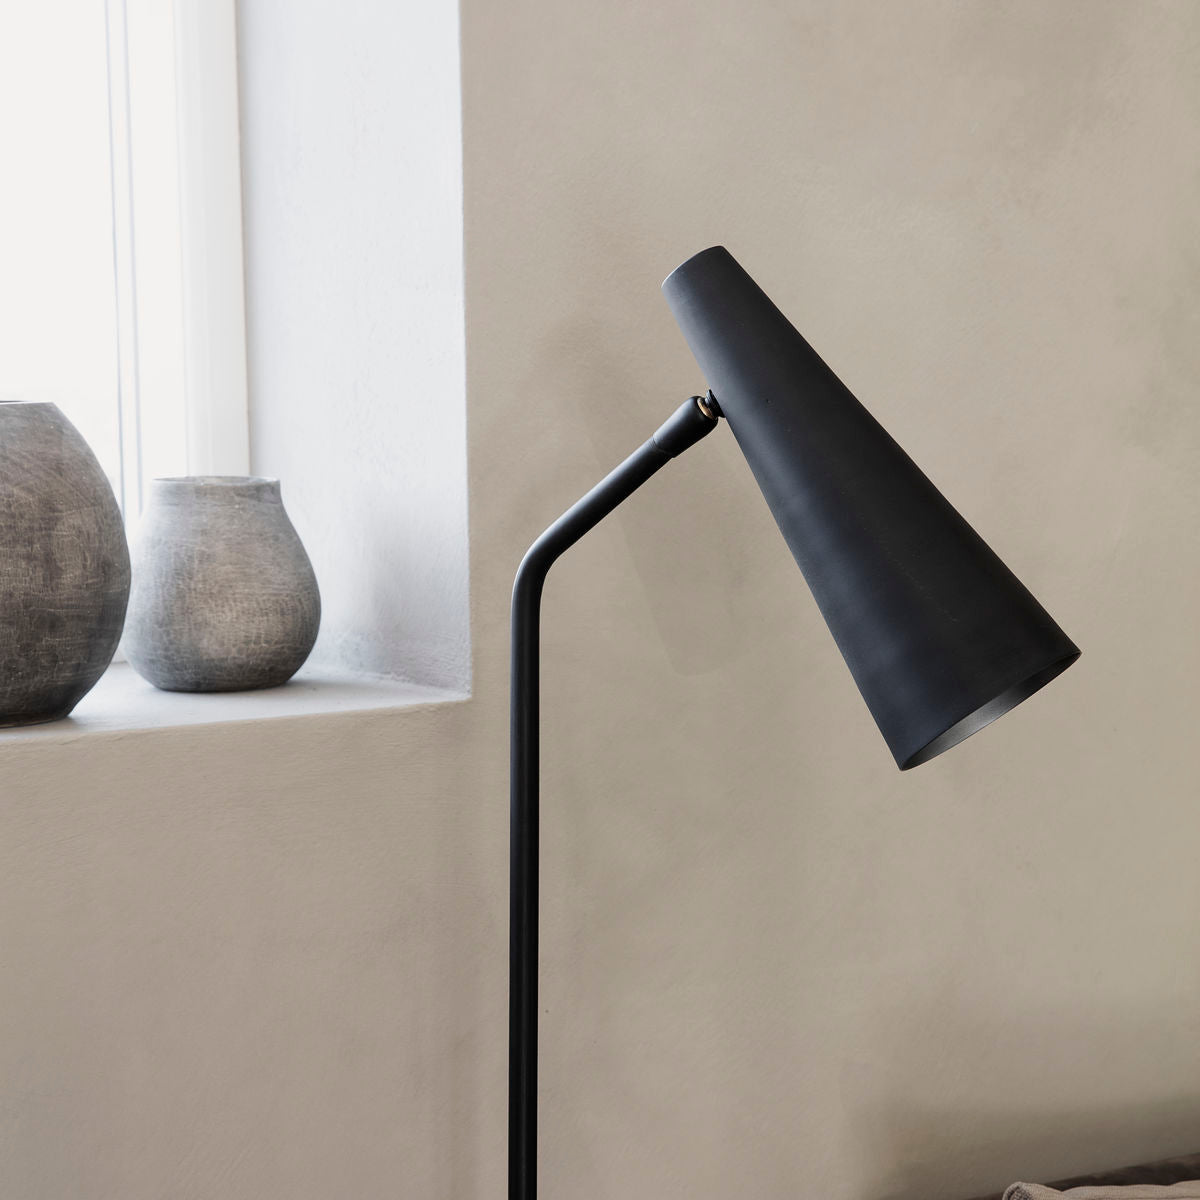 Floor Lamp, Precise, Matte Black finish lighting from House doctor